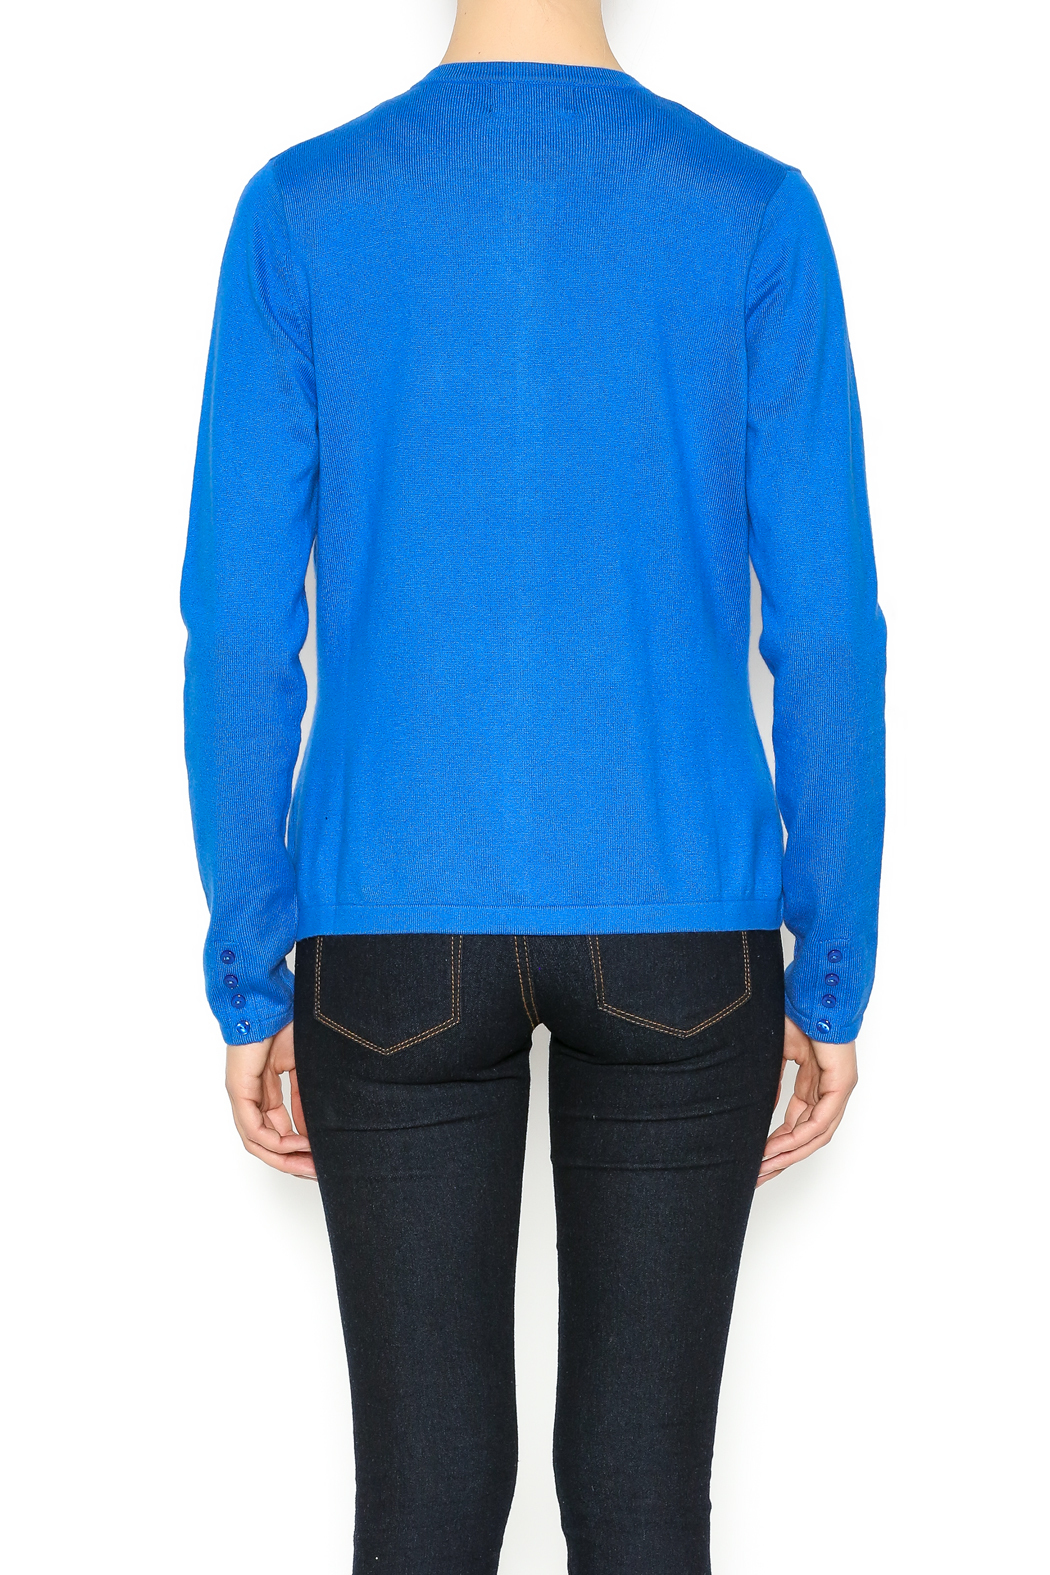 Periwinkle Blue Sweater Her Sweater